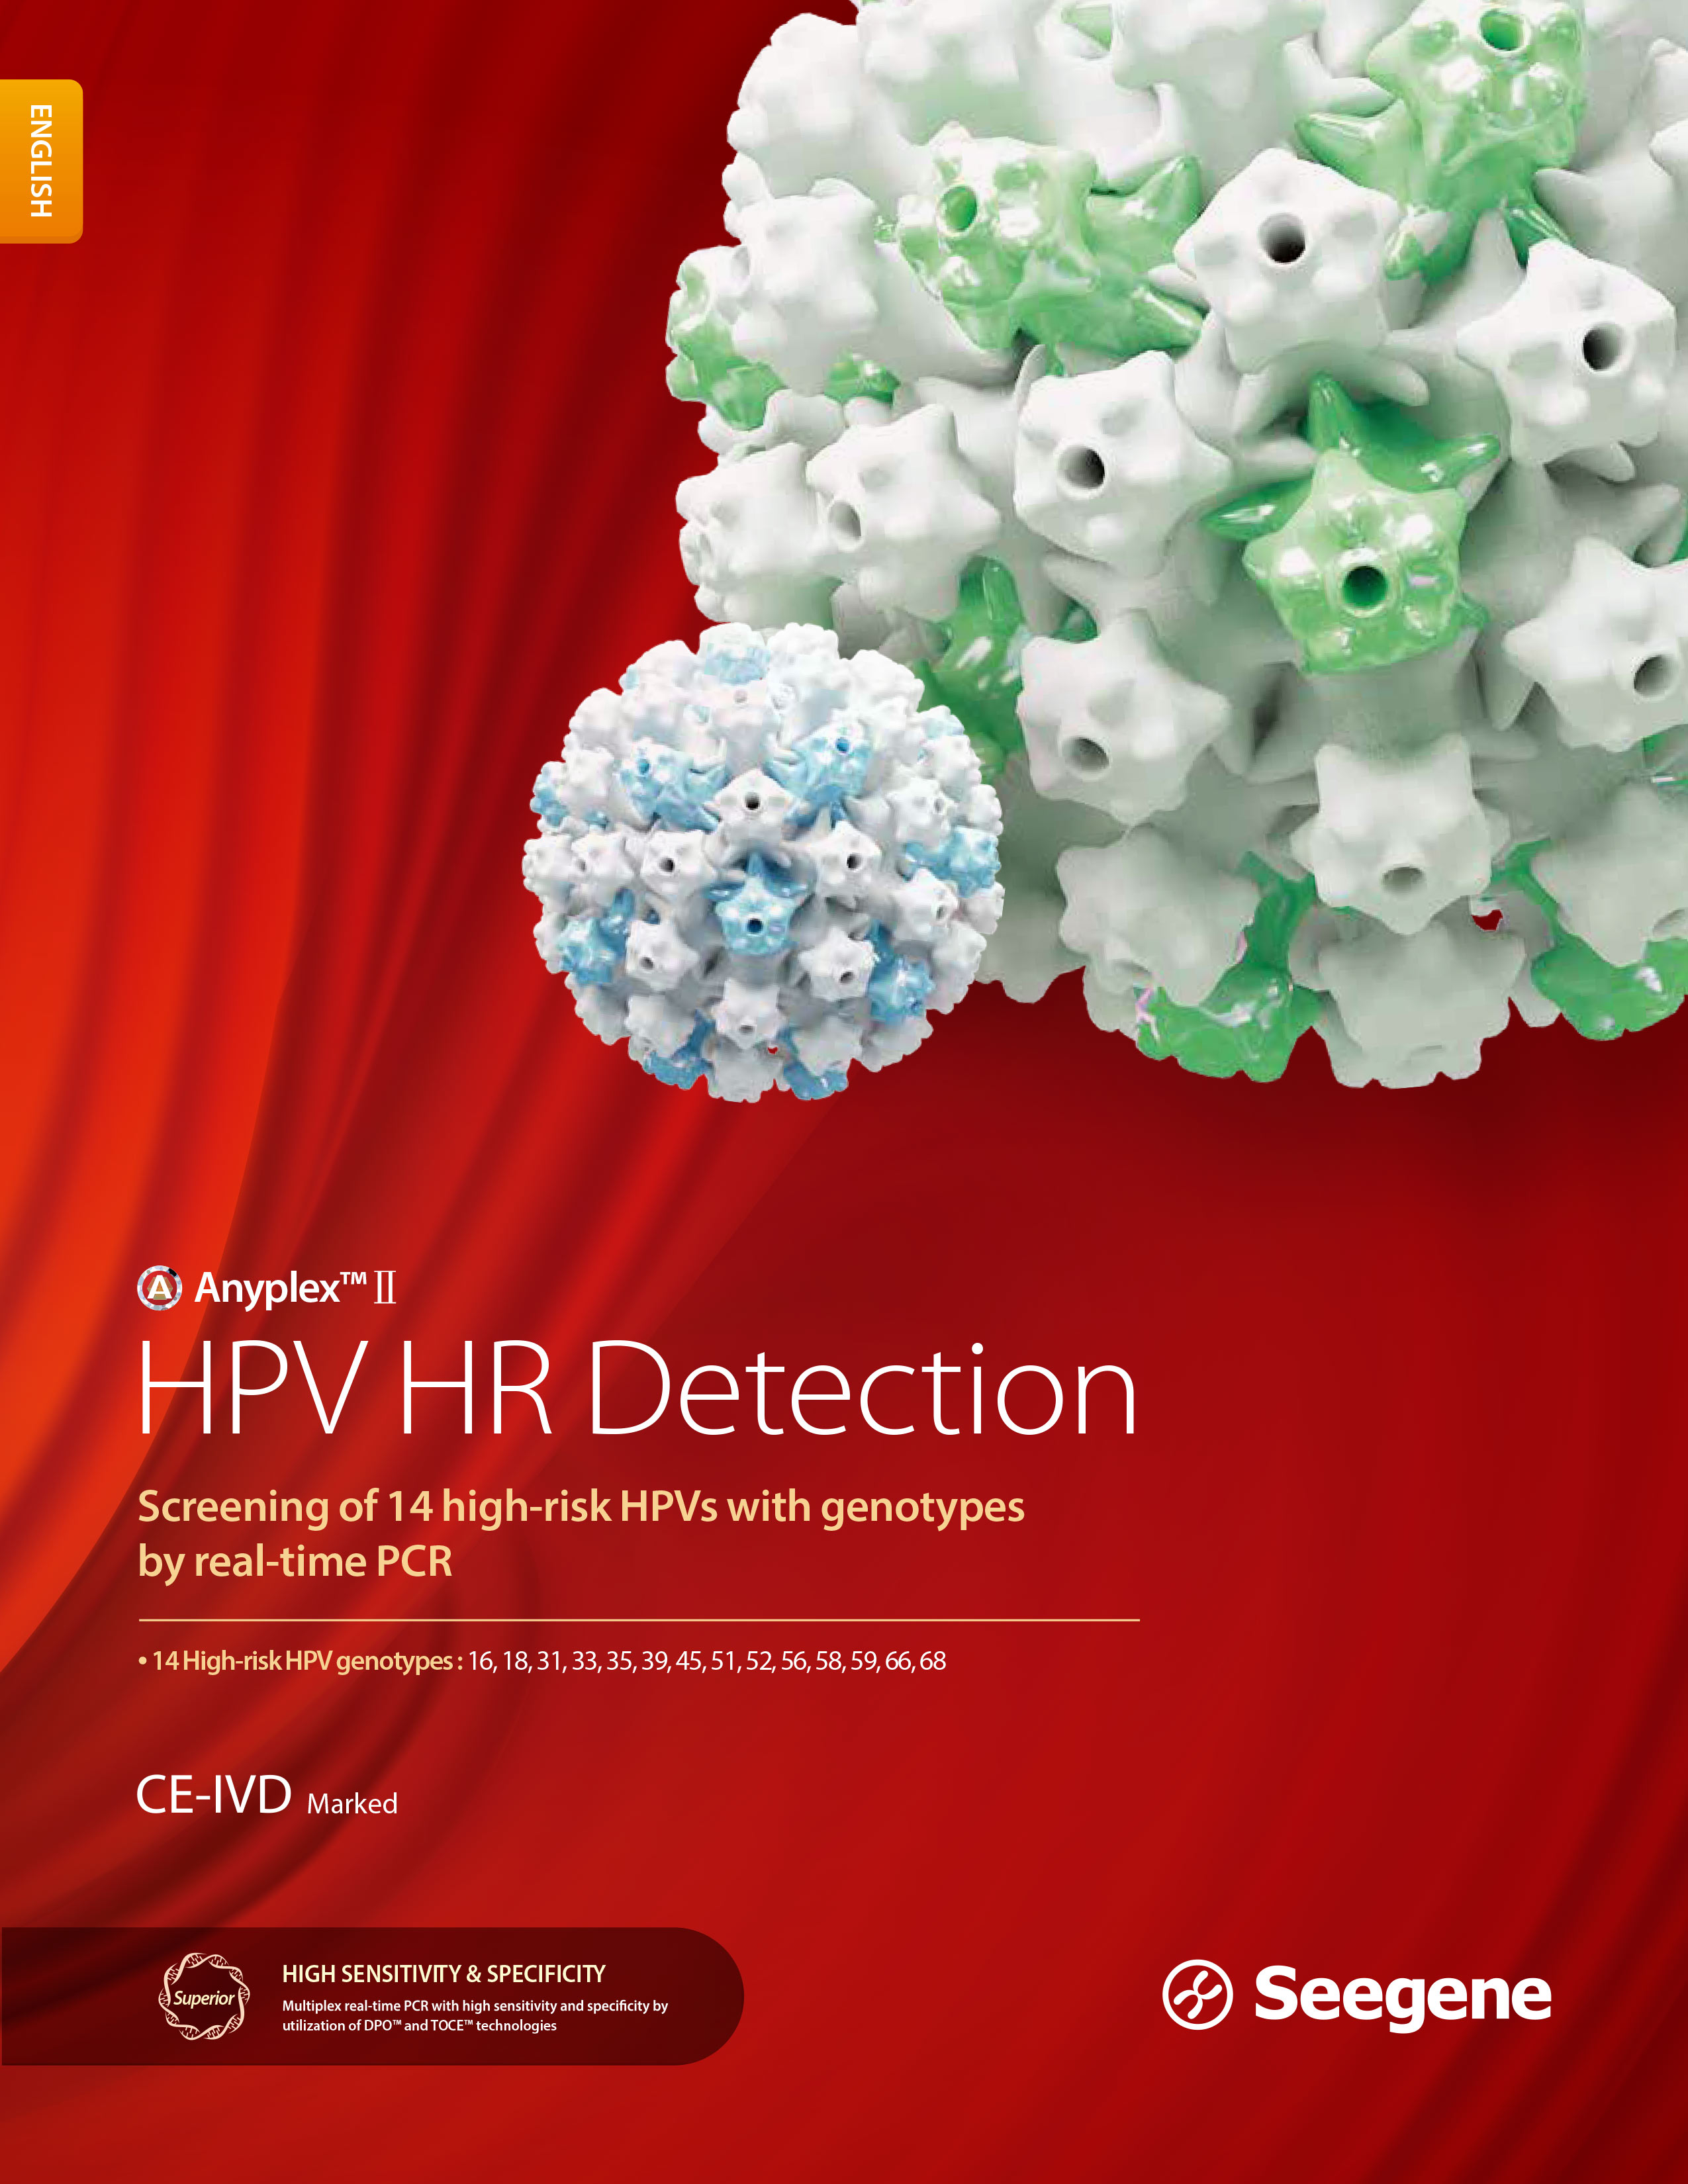 Anyplex™ II HPVHR Detection